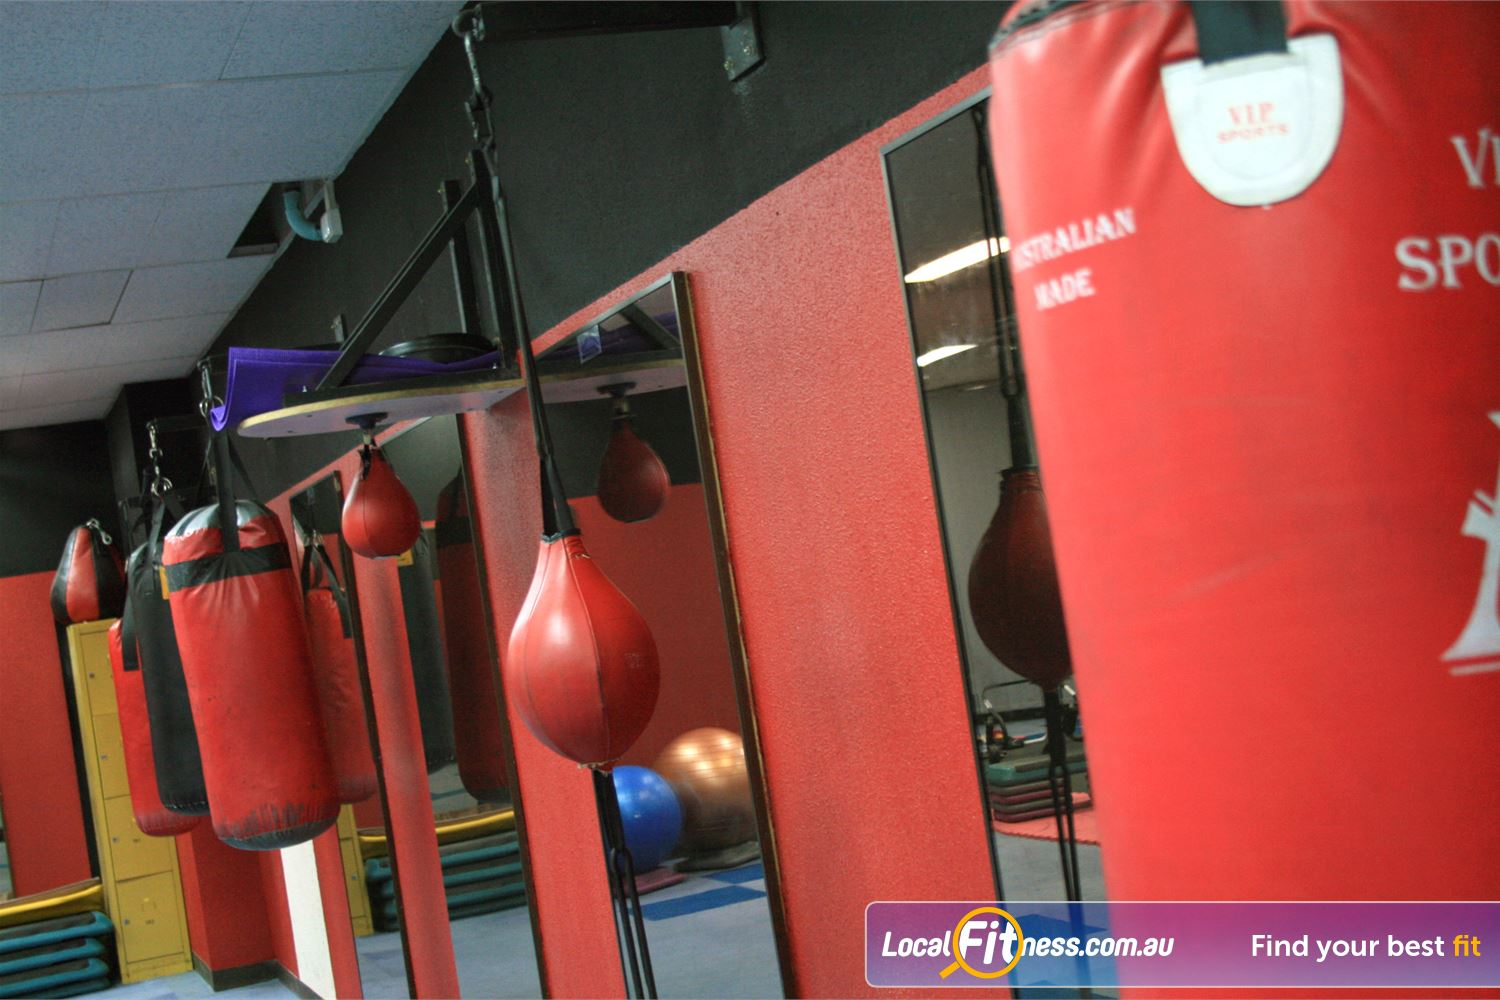 Docklands Gym & Squash Centre World Trade Centre The fully equipped Docklands boxing area.